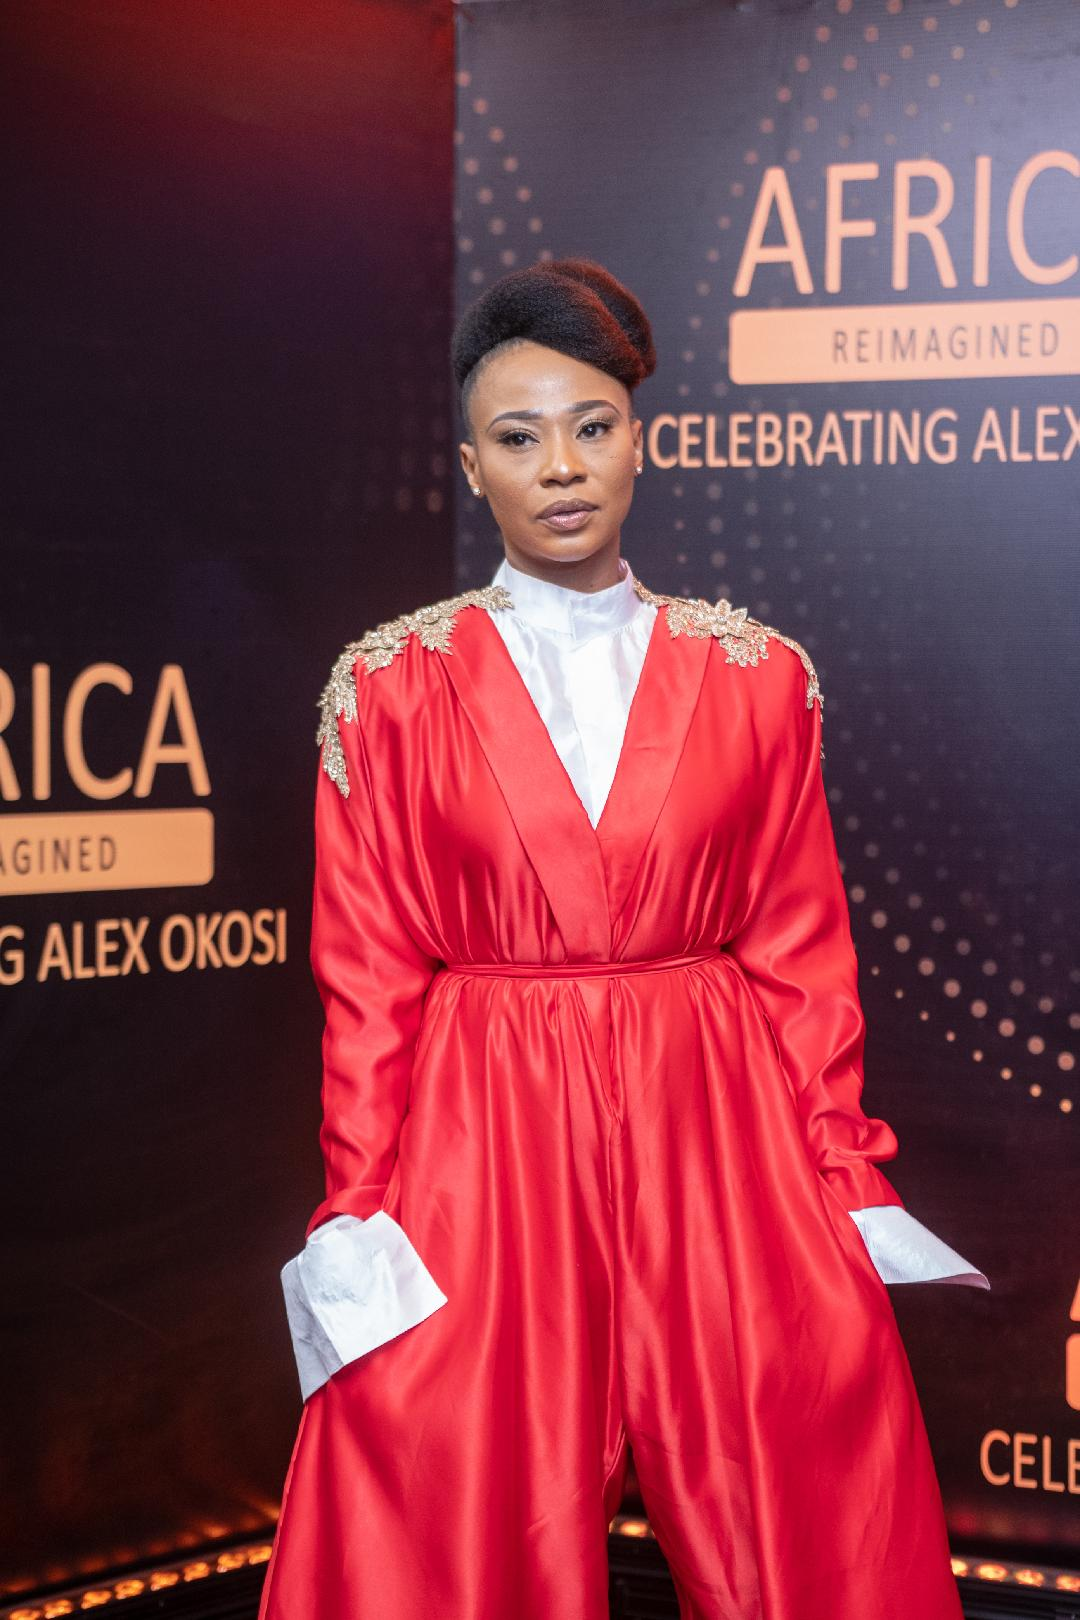 Actress Nse Ikpe-Etim Steps Out In Style For Alex Okosi's Party